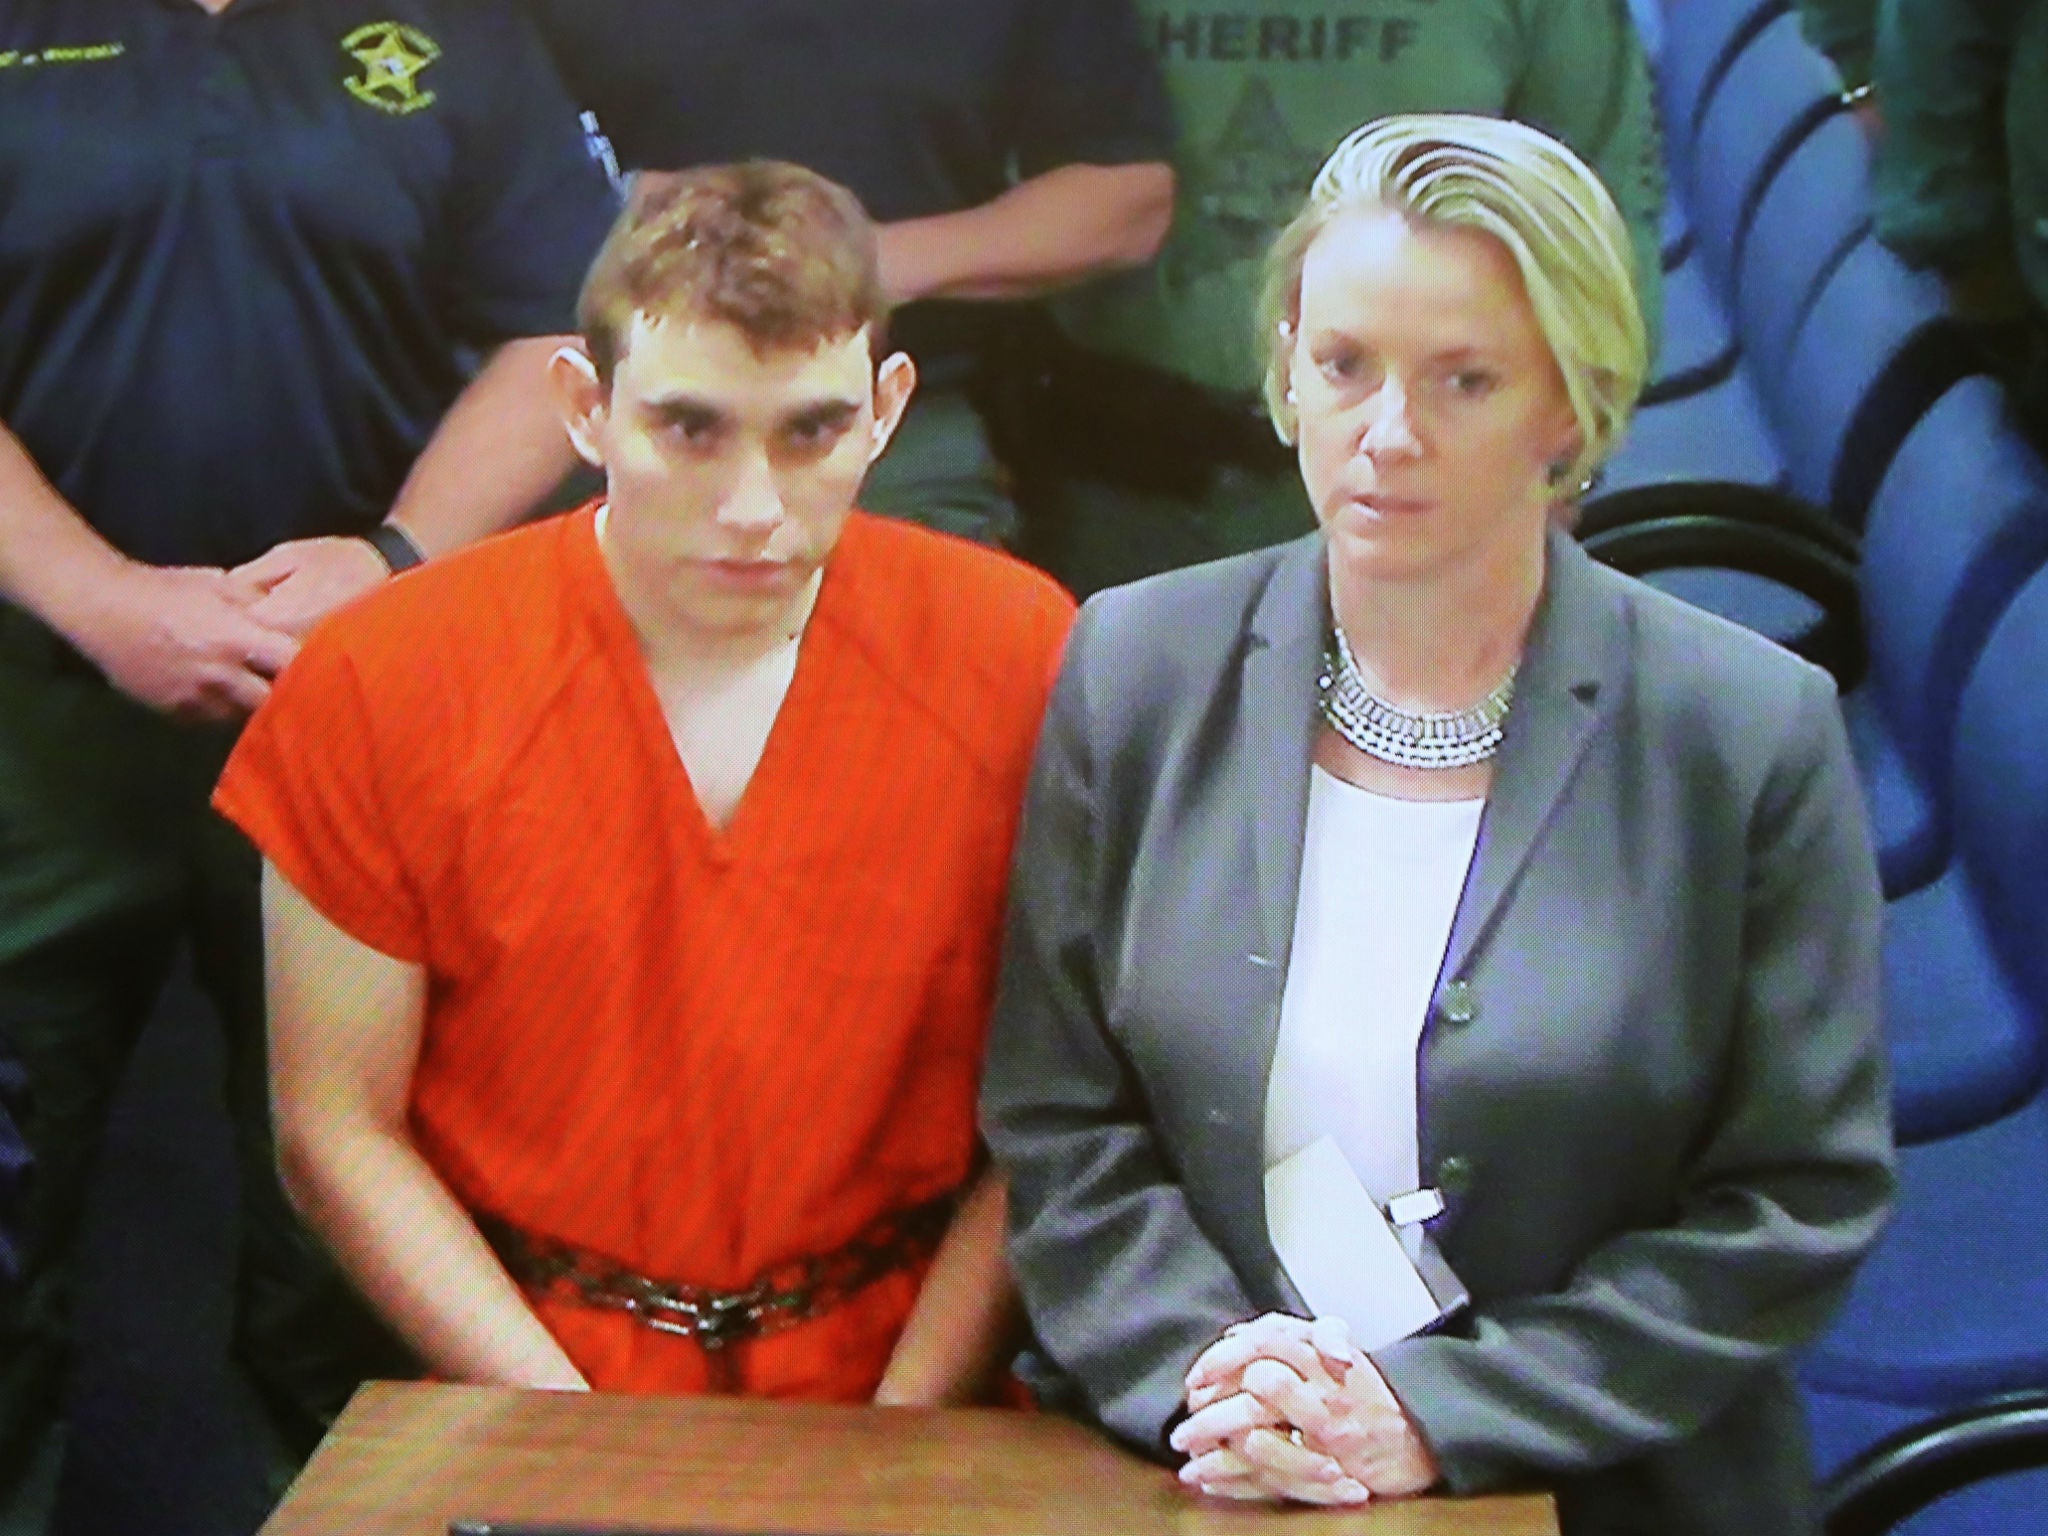 Florida Shooting: Suspected gunman Nikolas Cruz was 'investigated for cutting himself'